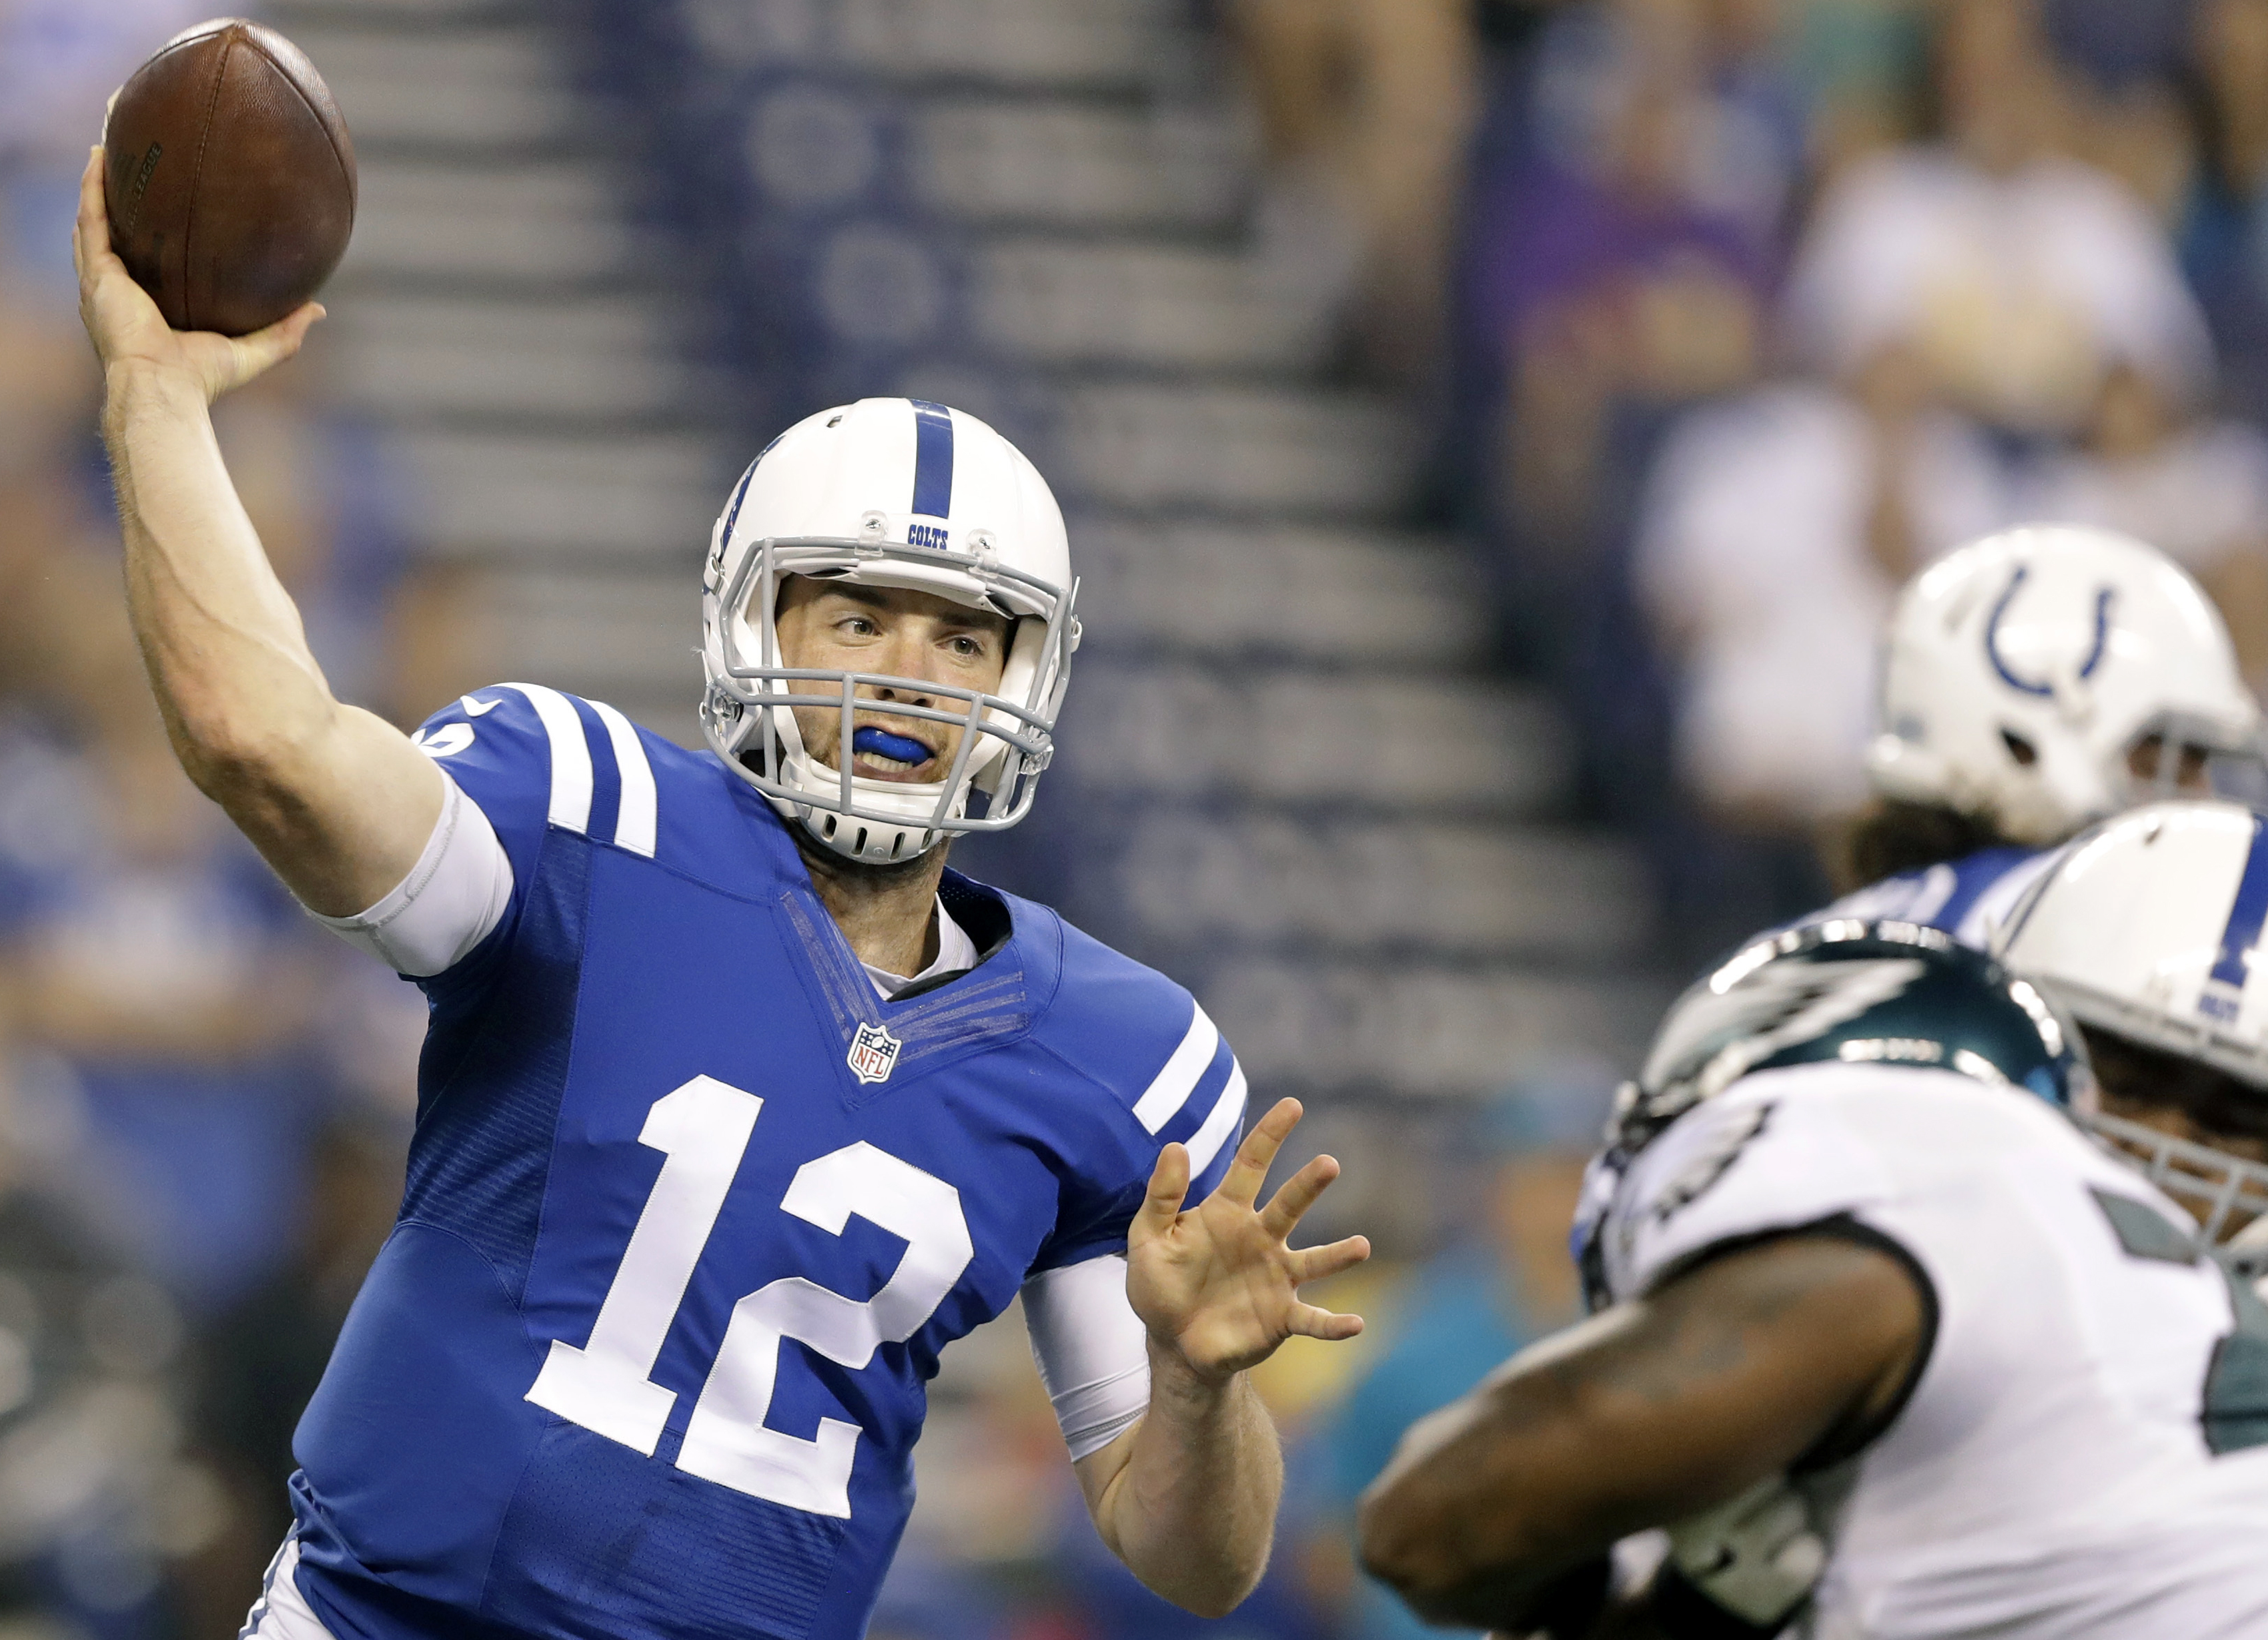 FILE - This Saturday, Aug. 27, 2016 file photo shows Indianapolis Colts quarterback Andrew Luck (12) throwing against the Philadelphia Eagles during the first half of an NFL preseason football game in Indianapolis. Luck returns for the Colts, and so do po